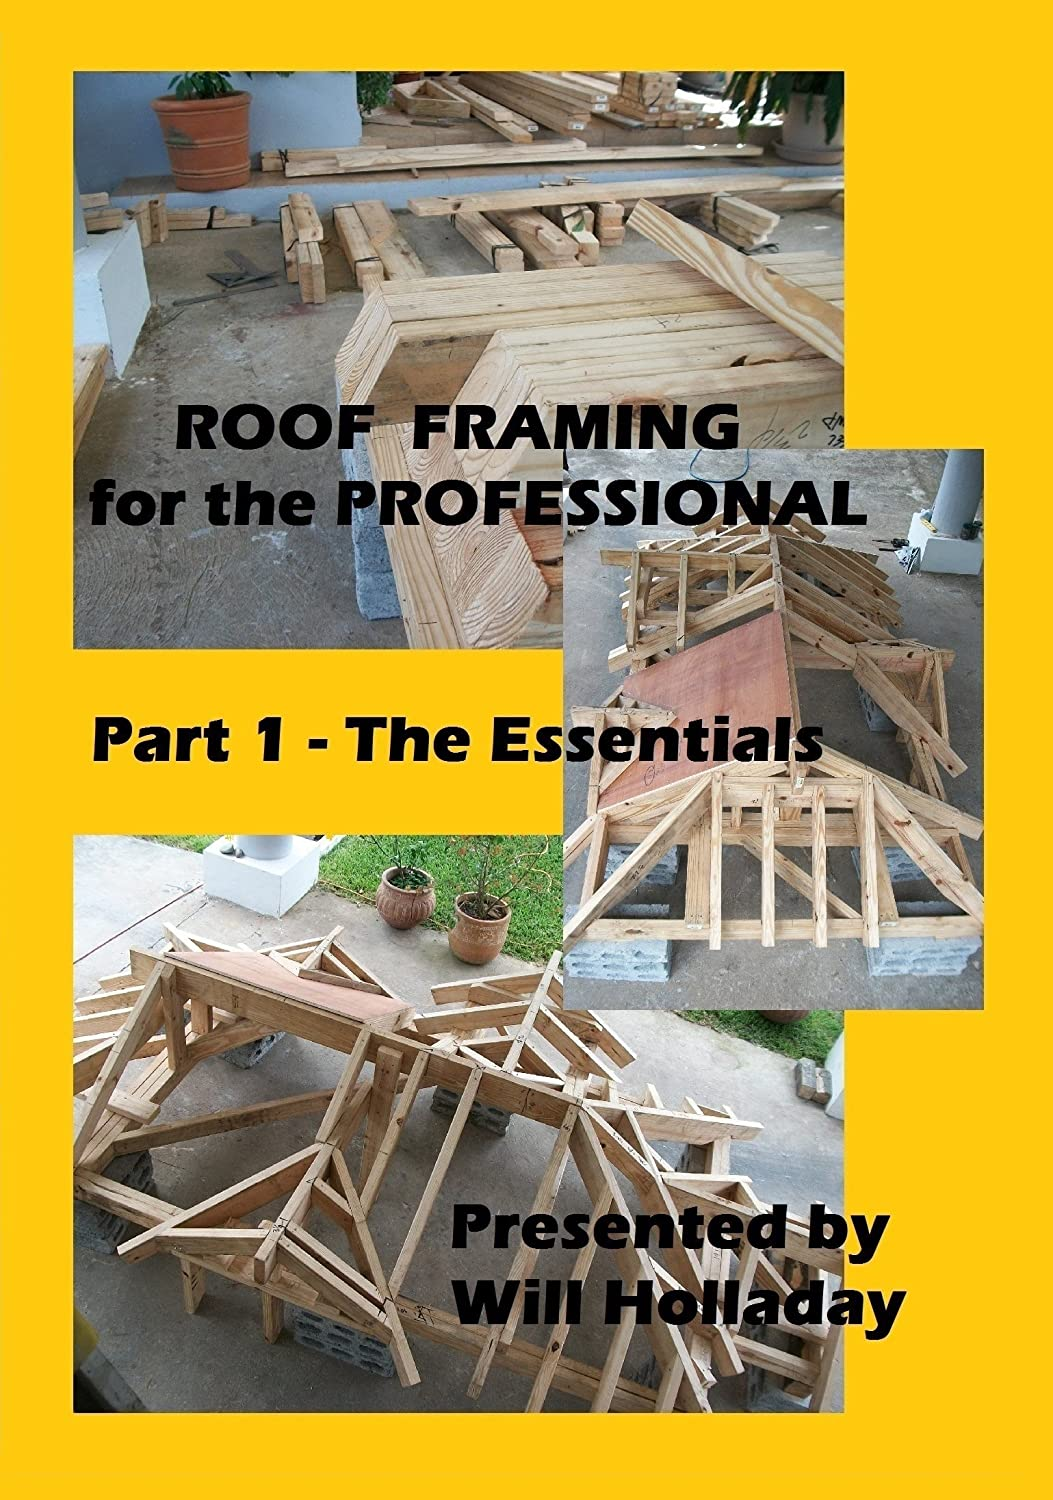 Amazon Com Roof Framing For The Professional Part 1 The Essentials Will Holladay Will Holladay Movies Tv